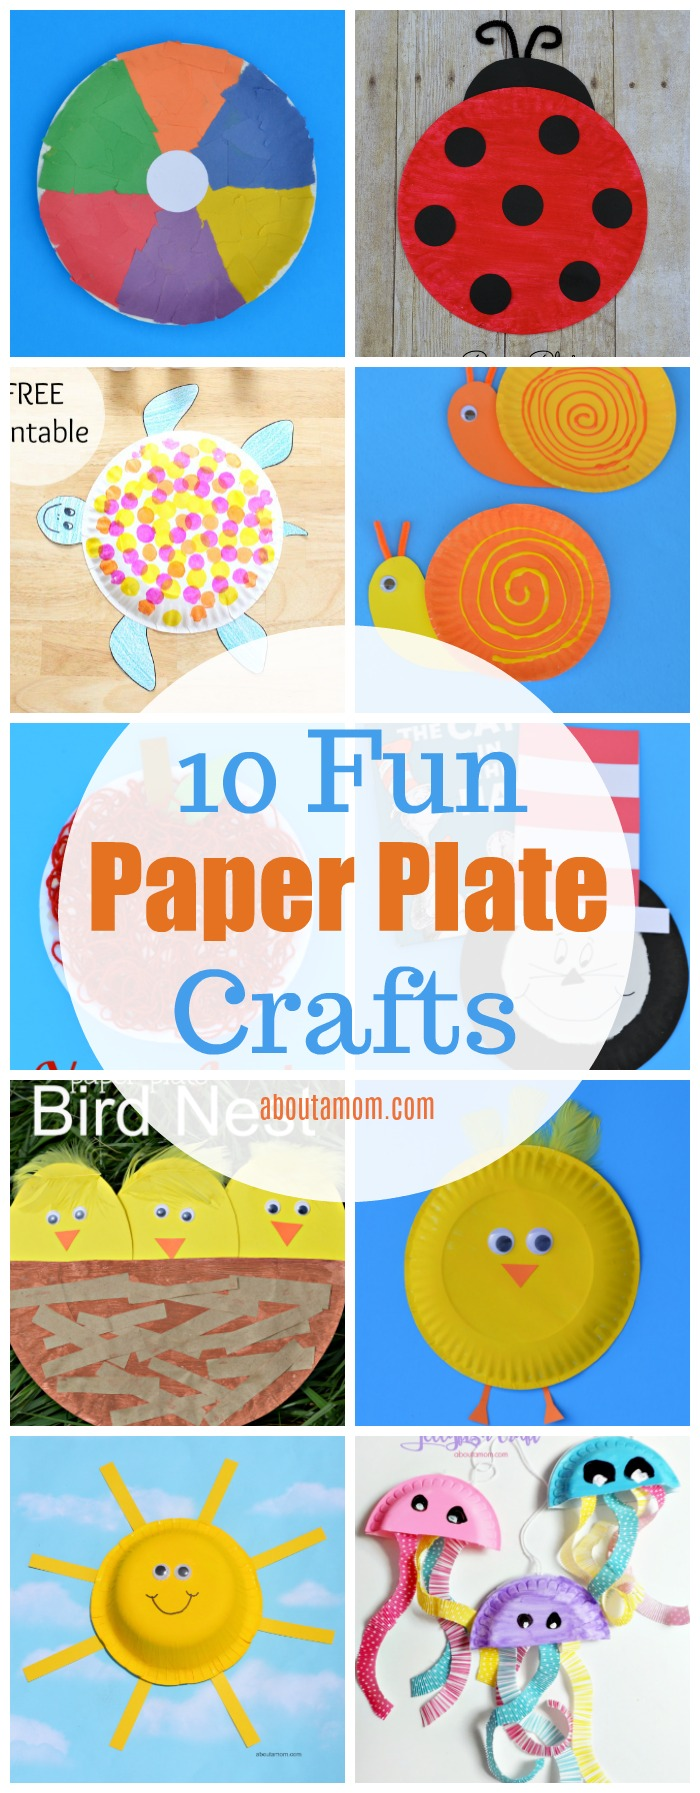 A roundup of 10 simple, inexpensive, and fun paper plate crafts for kids that are great for all seasons. These paper plate projects are perfect for preschool age children and younger elementary school kids.